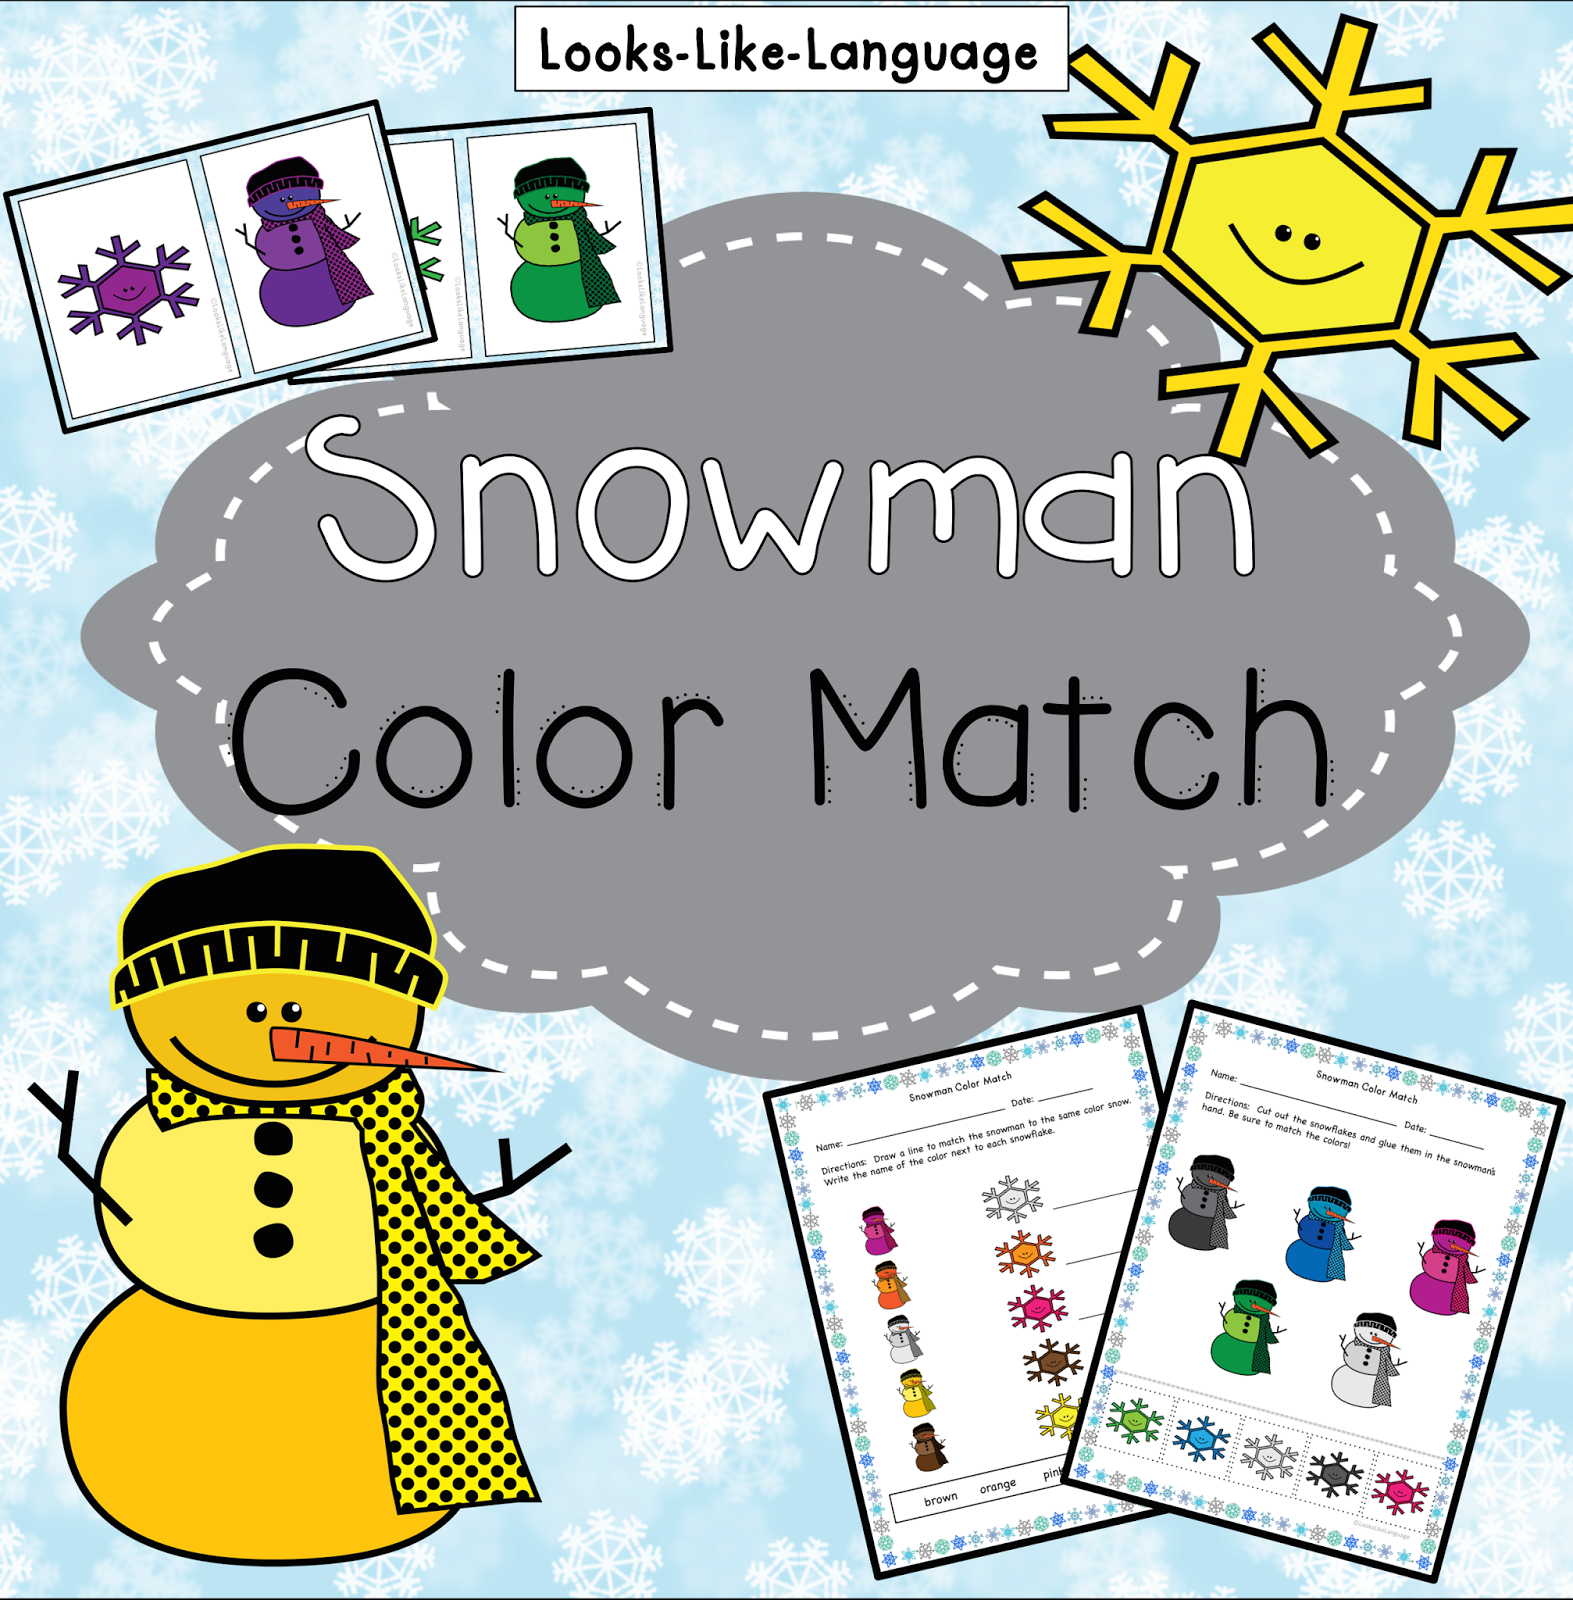 Snowman Freebie 2 By Looks Like Language